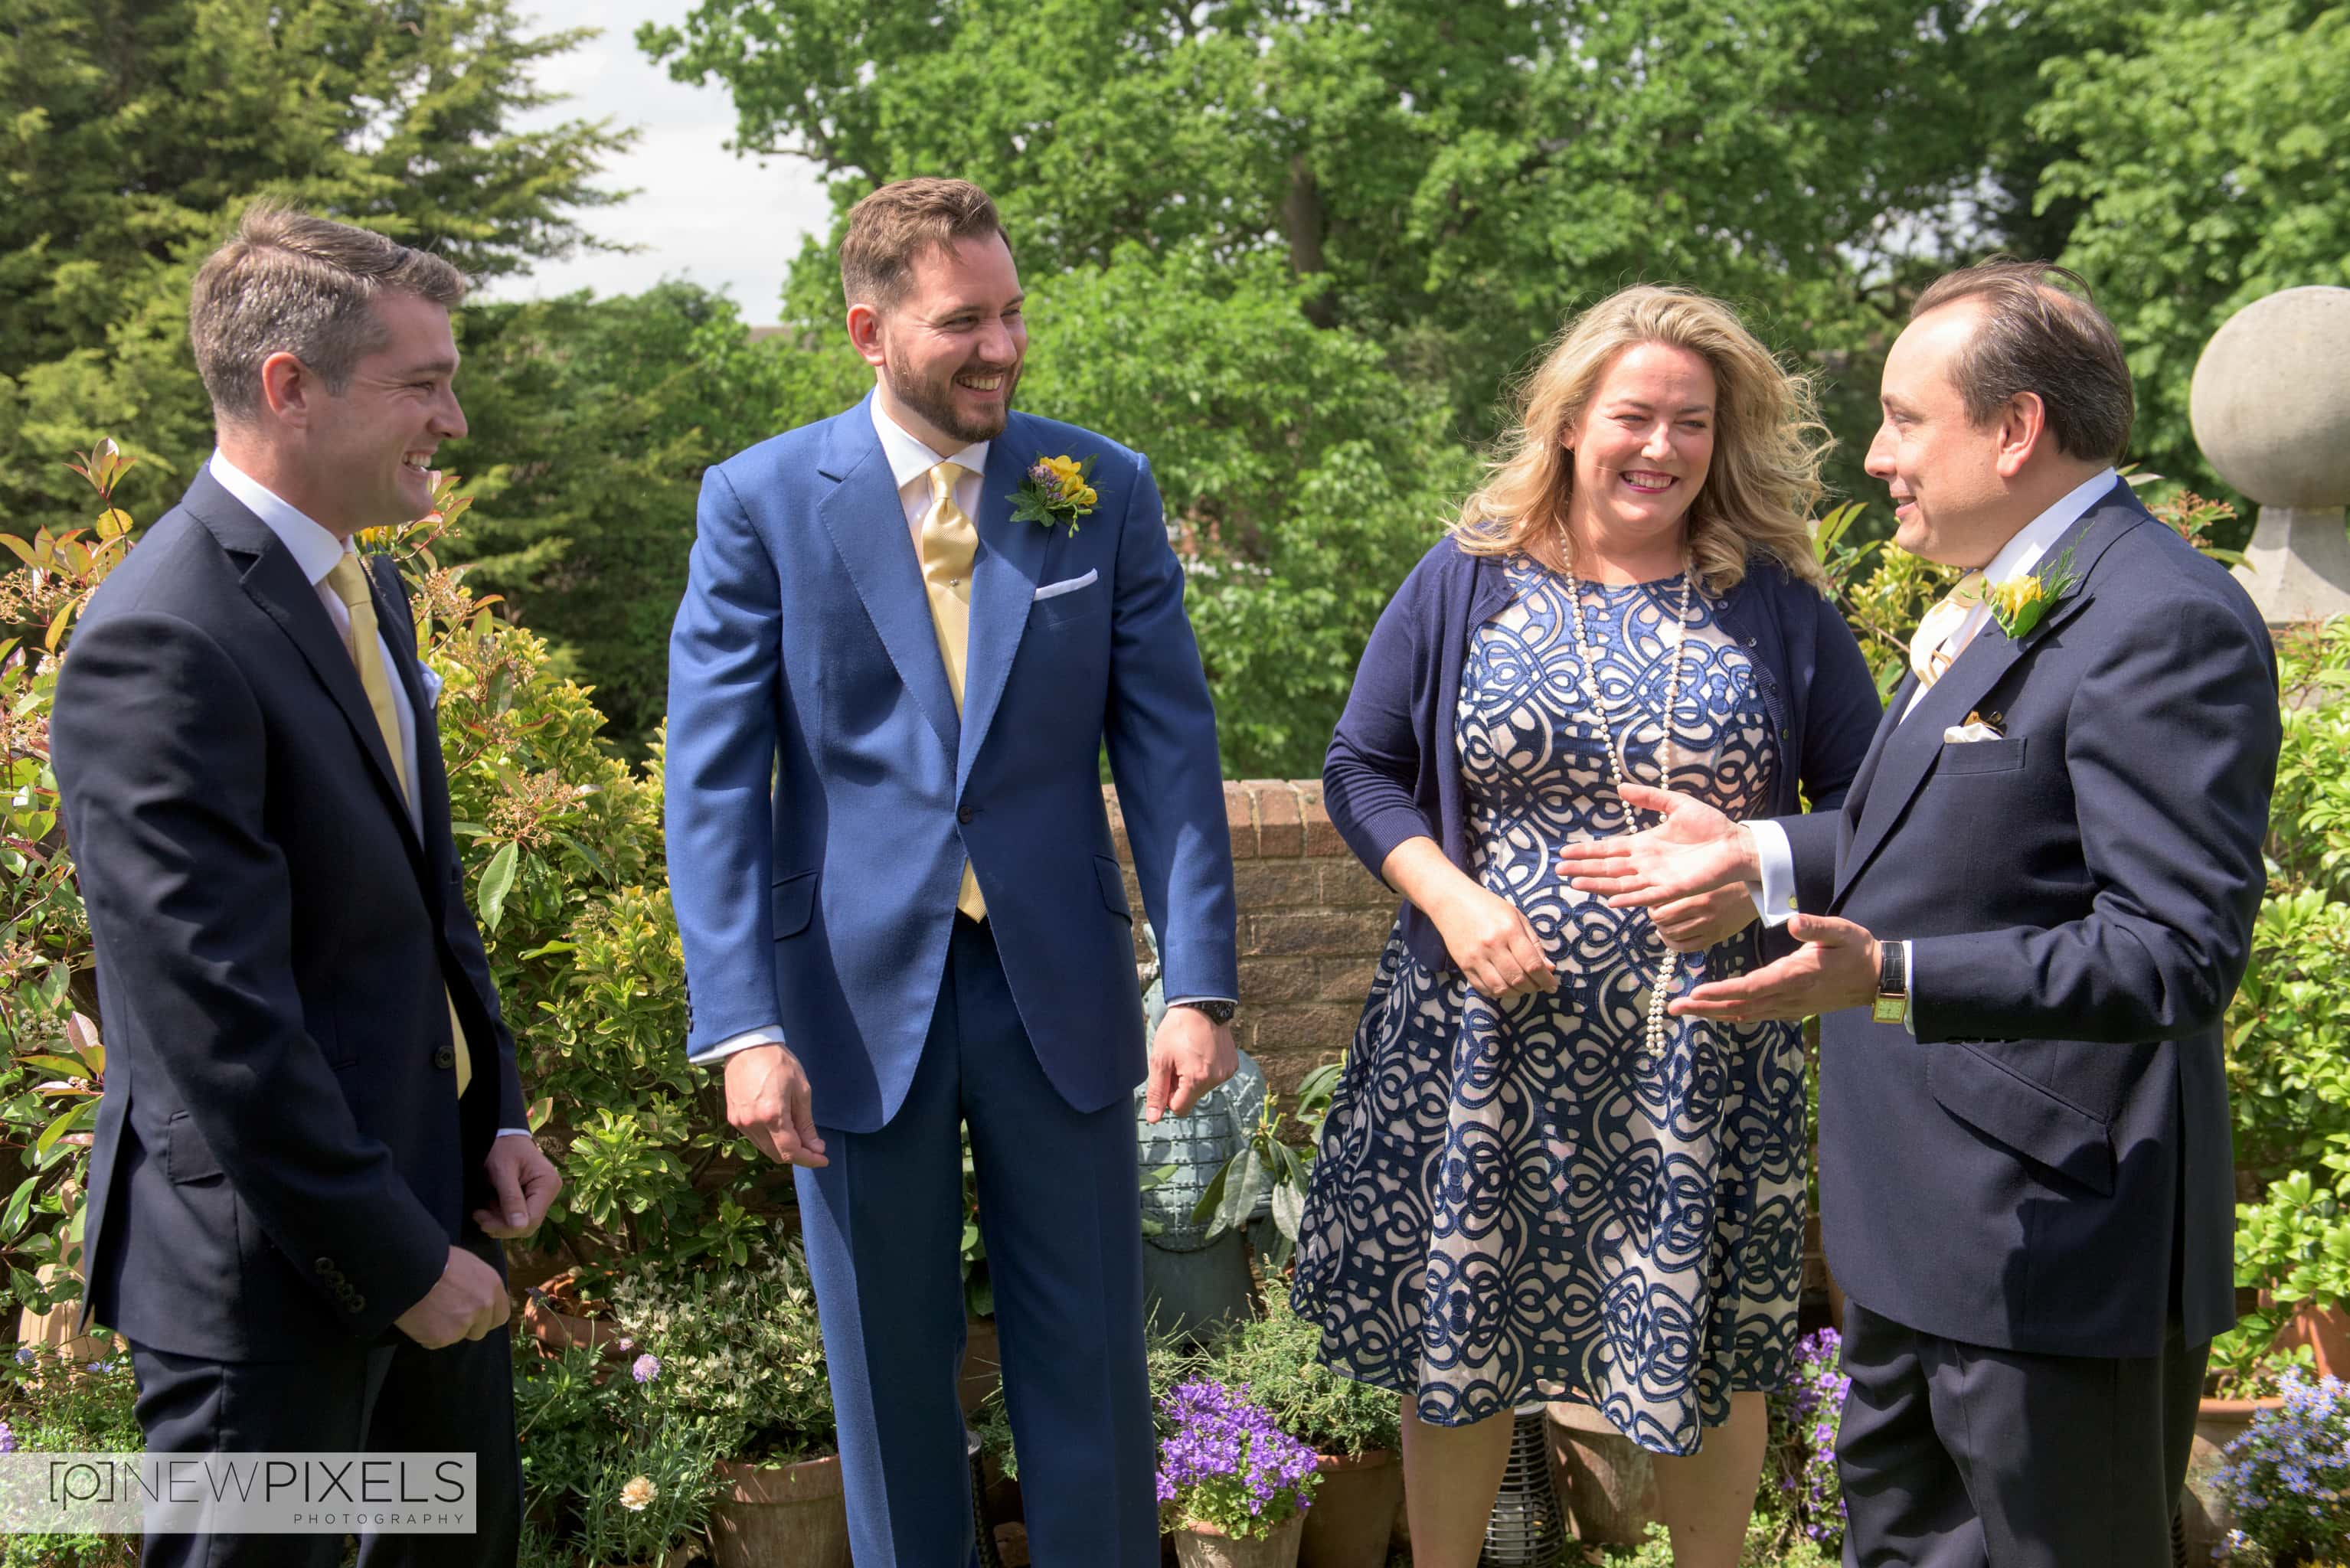 Enfield Wedding Photography- New Pixels-10